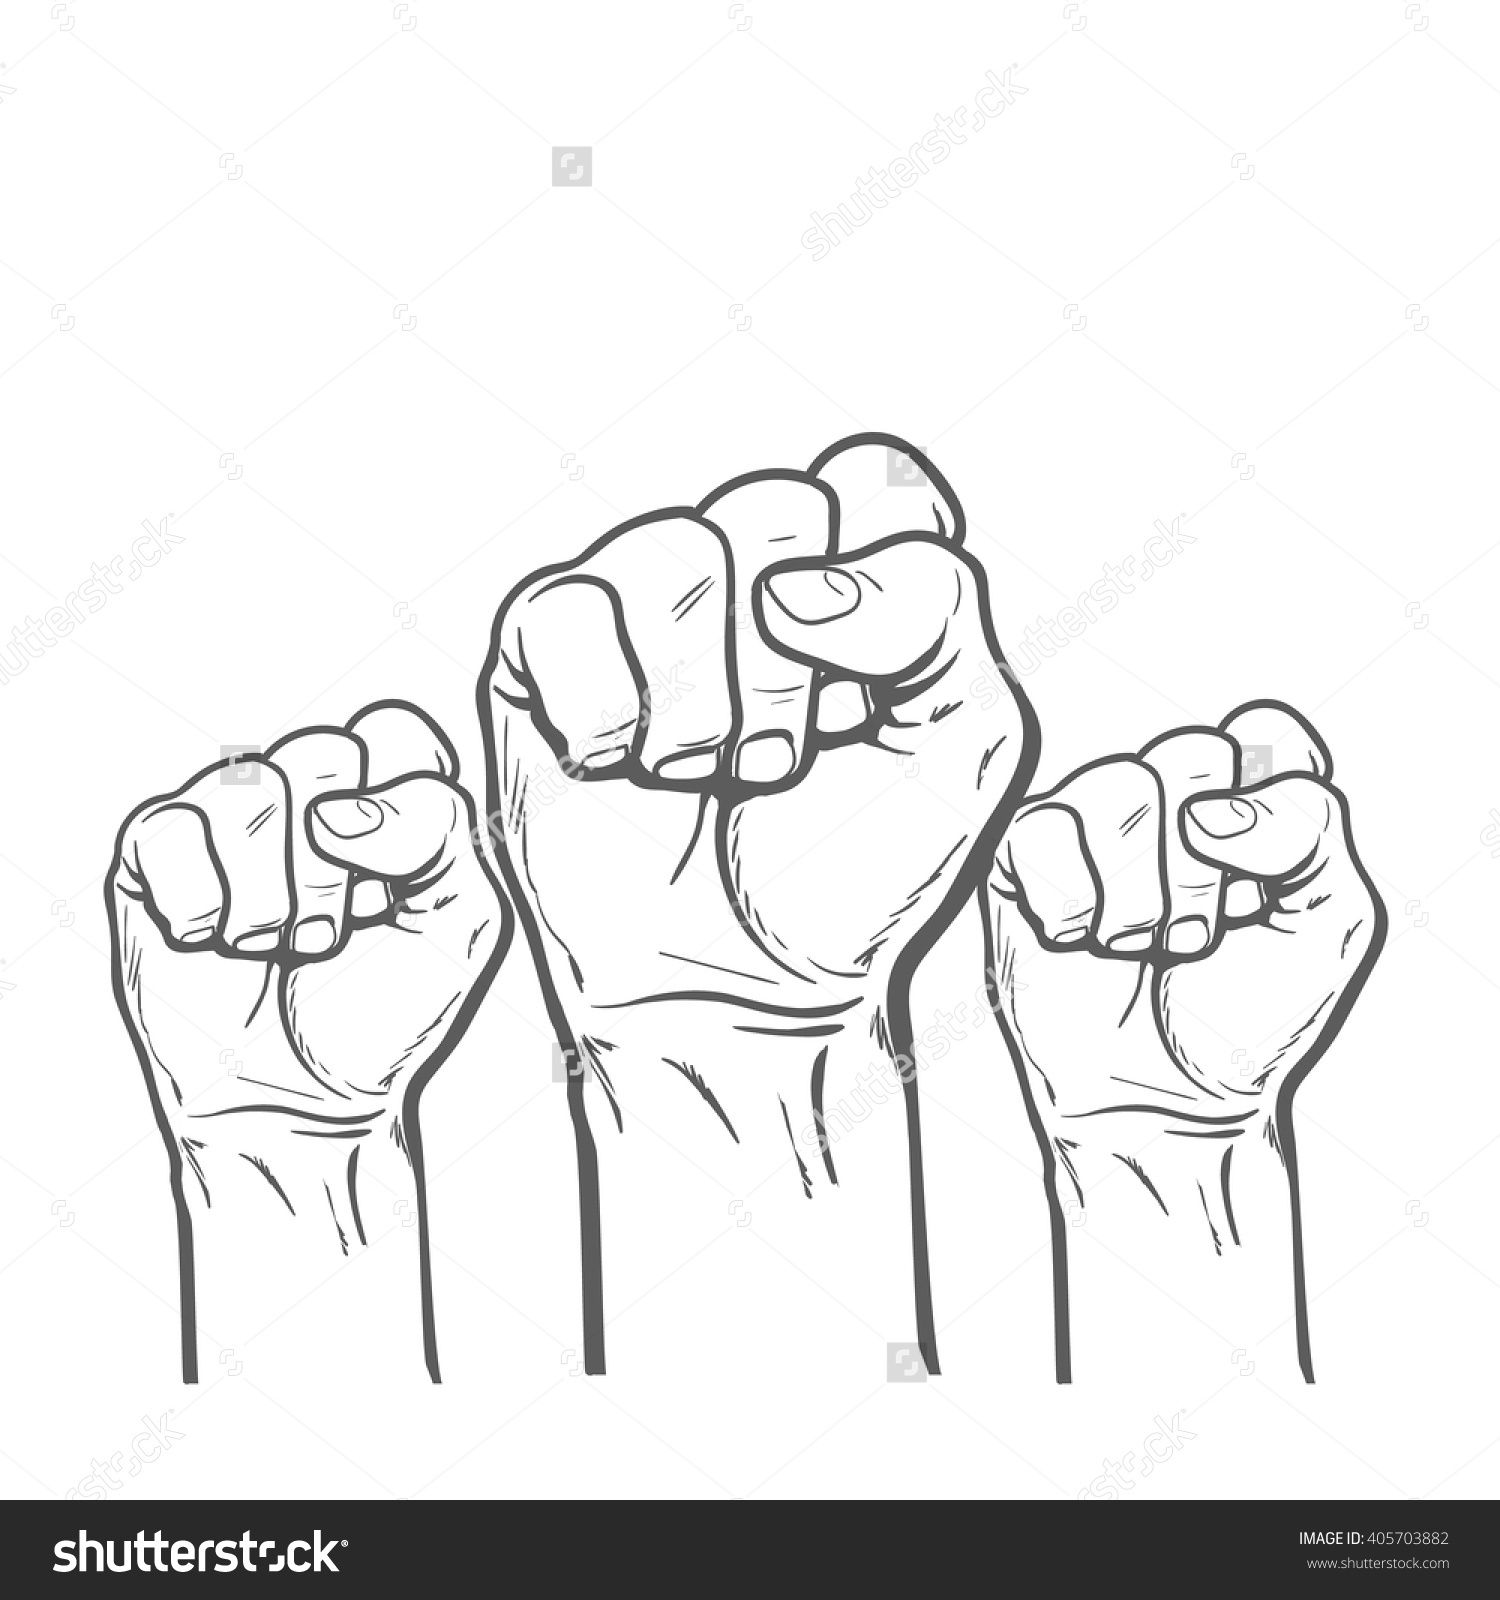 Many mans vector illustration. Fist clipart air drawing